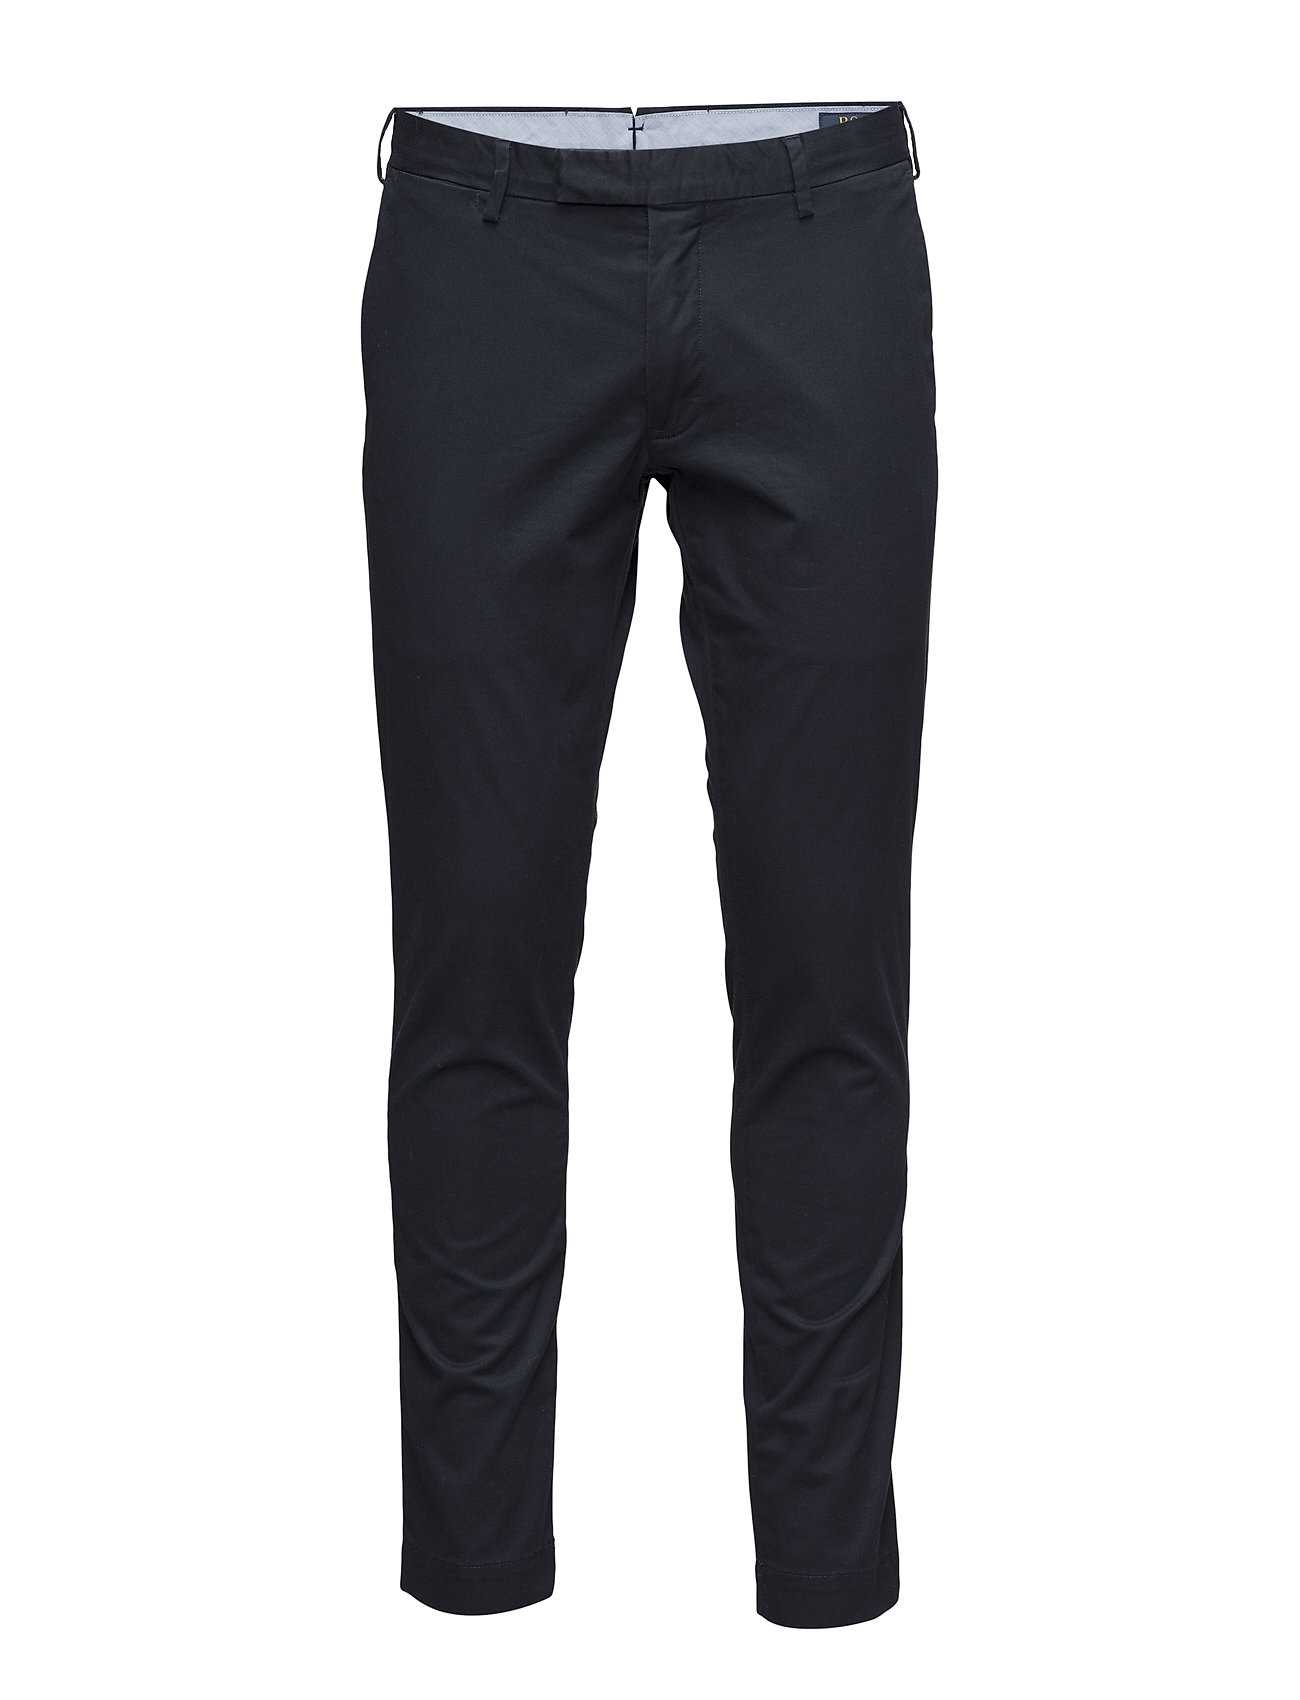 Polo Ralph Lauren Stretch Straight Fit Chino